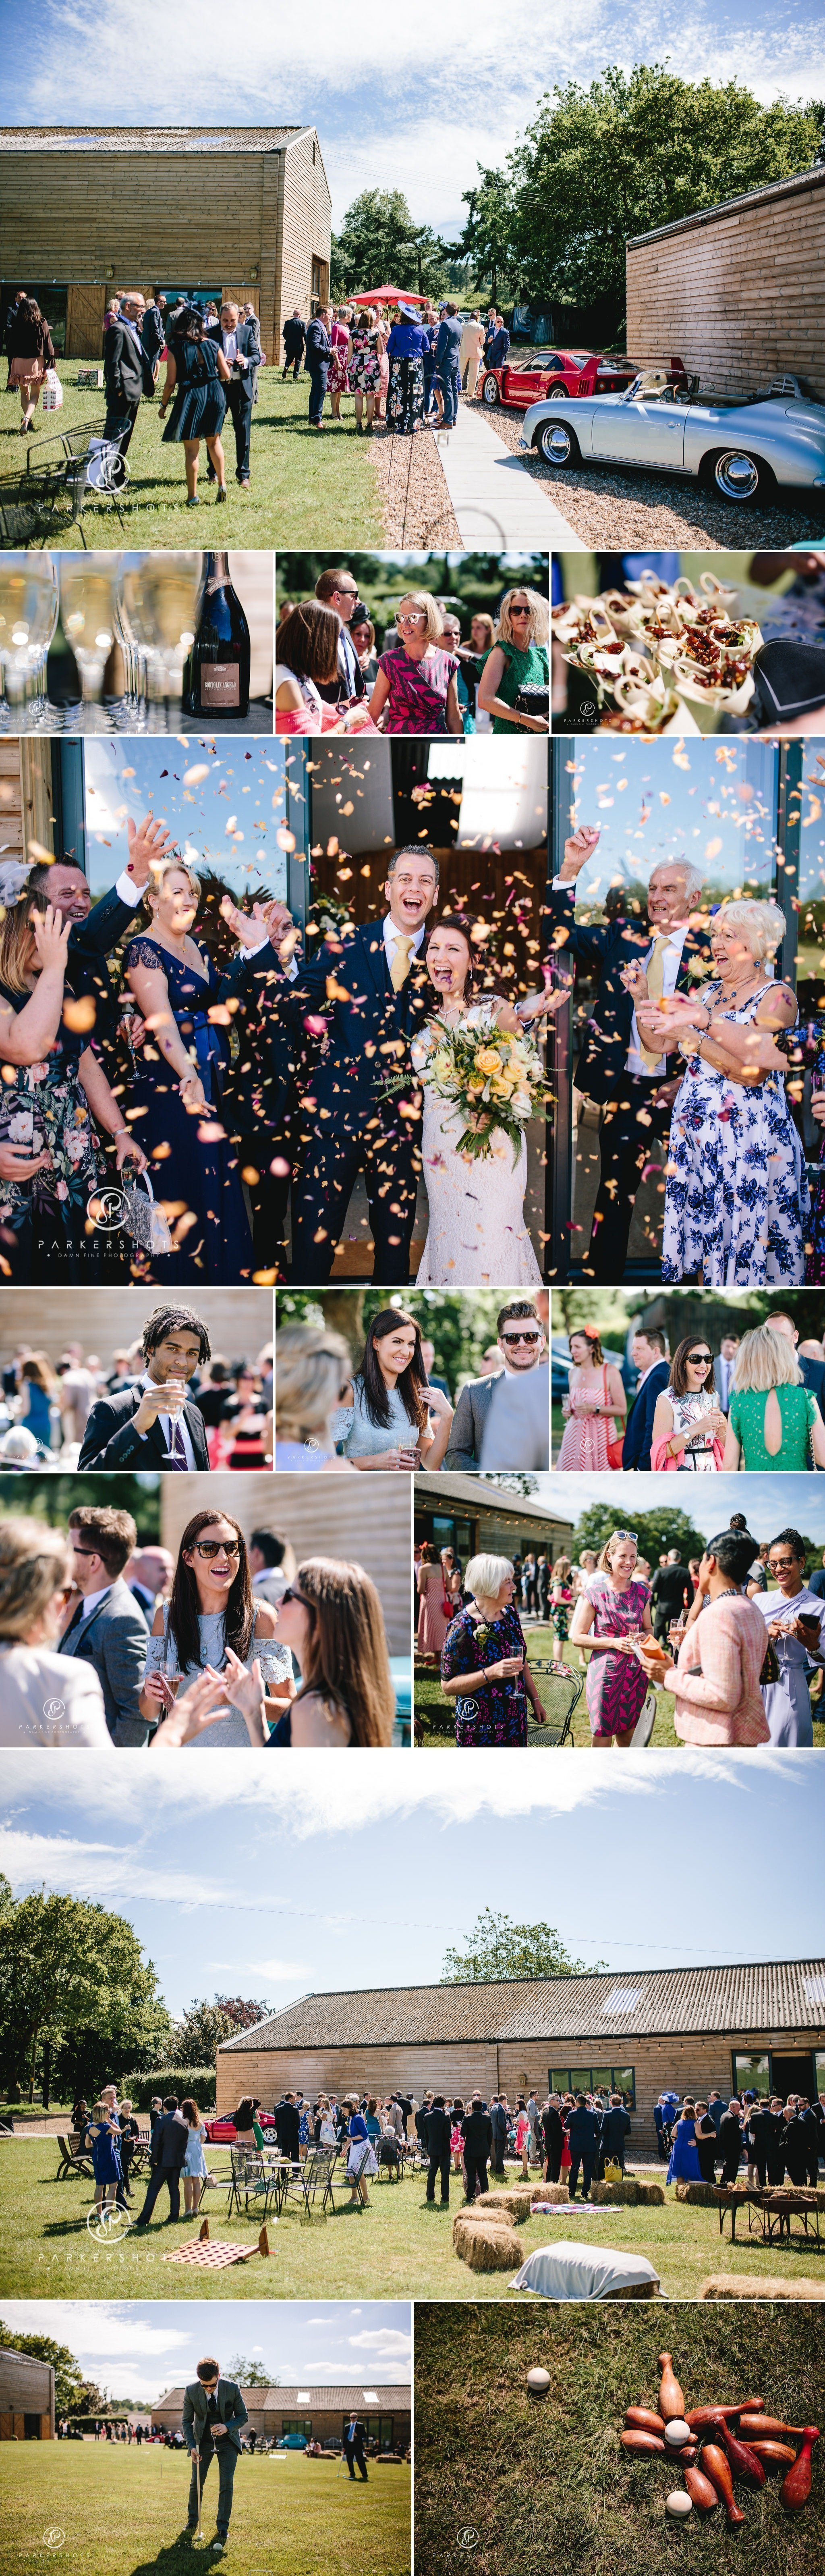 Wedding celebrations at Chafford Park